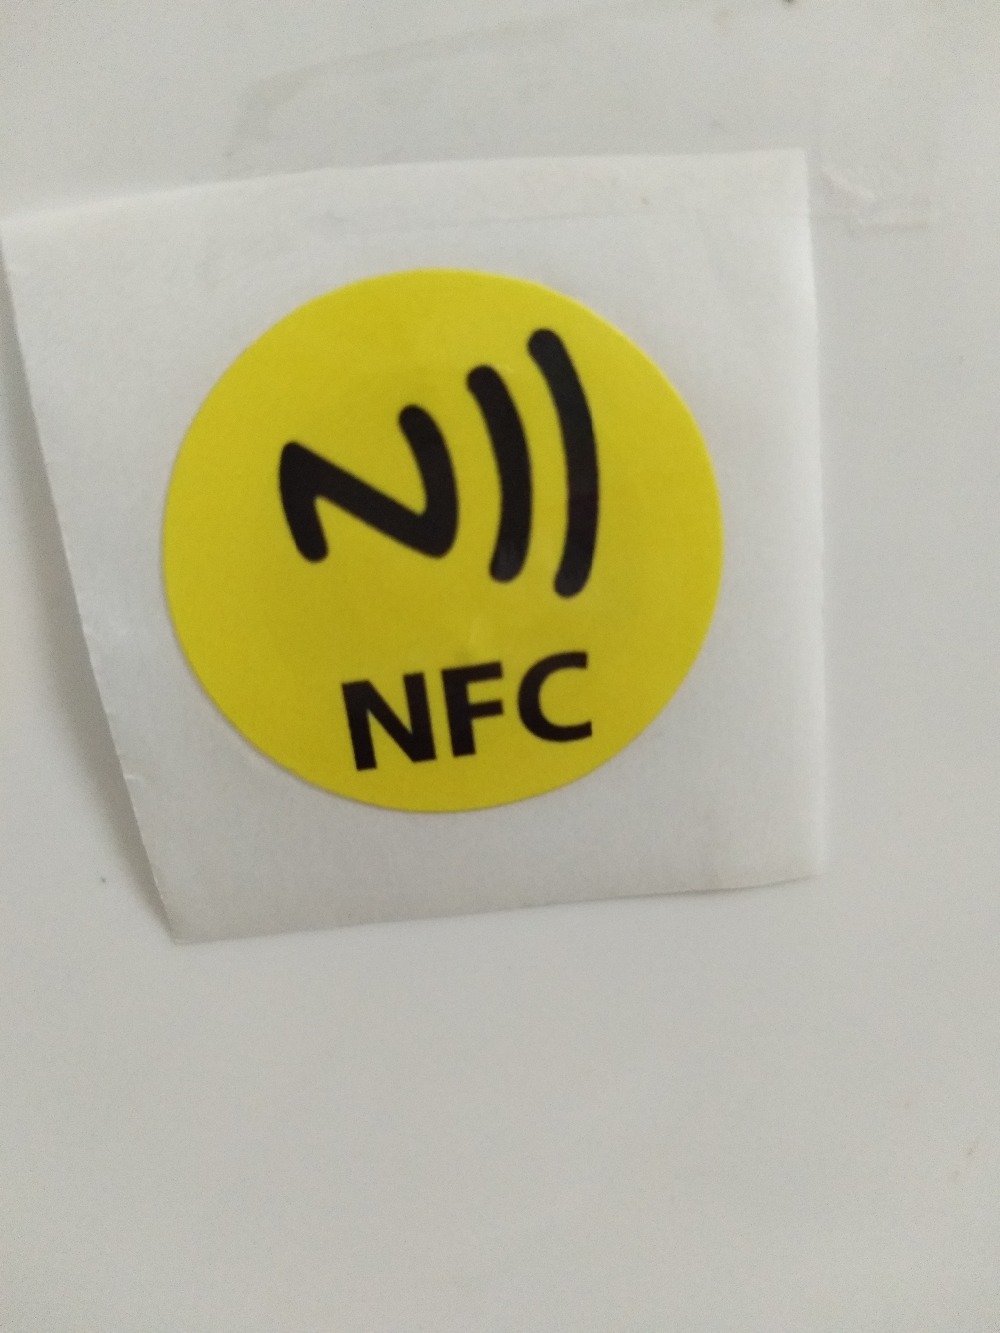 10pcs/Lot NFC Tags Sticker 13.56MHz ISO14443A Ntag 213 NFC Stickers Universal Label Ntag213 RFID Tag for all NFC enable 200pcs nfc tags sticker 13 56mhz iso14443a ntag 213 nfc stickers universal lable ntag213 rfid tag for all nfc enable 6pcs lot